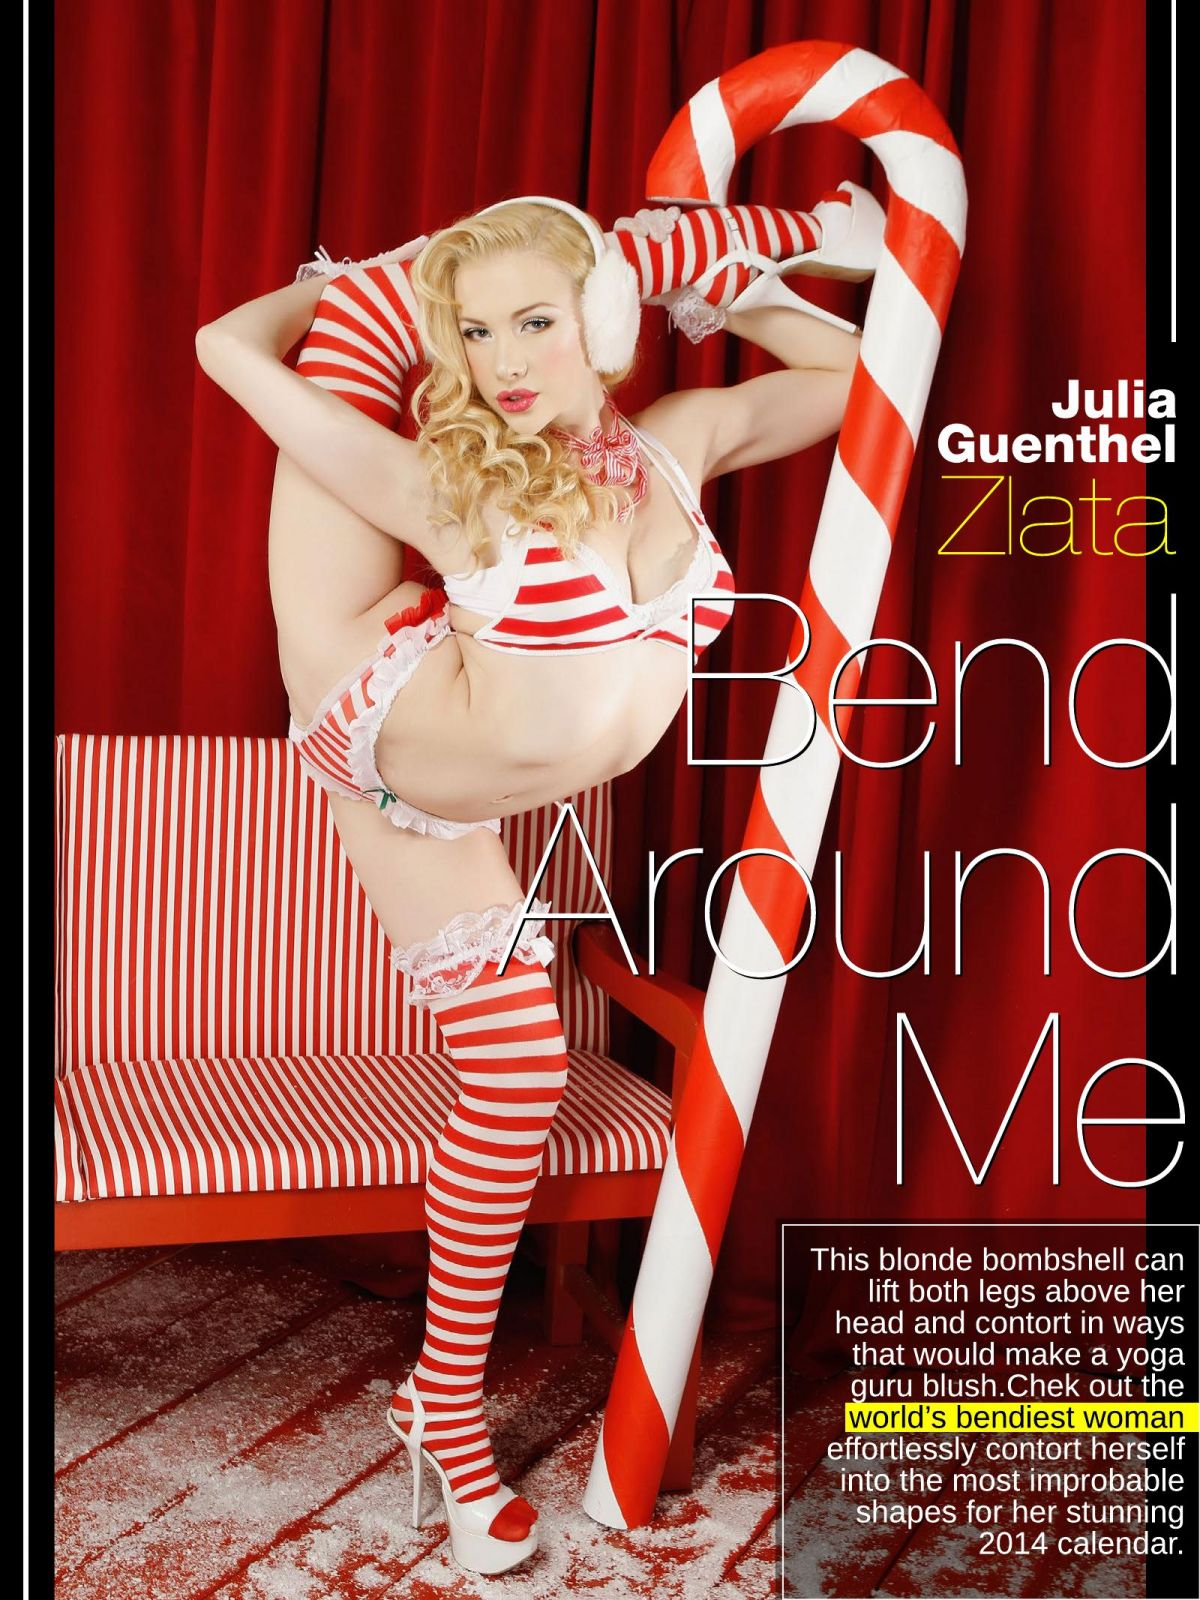 JULIA GUENTHEL ZLATA in Manic Magazine, February 2014 Issue